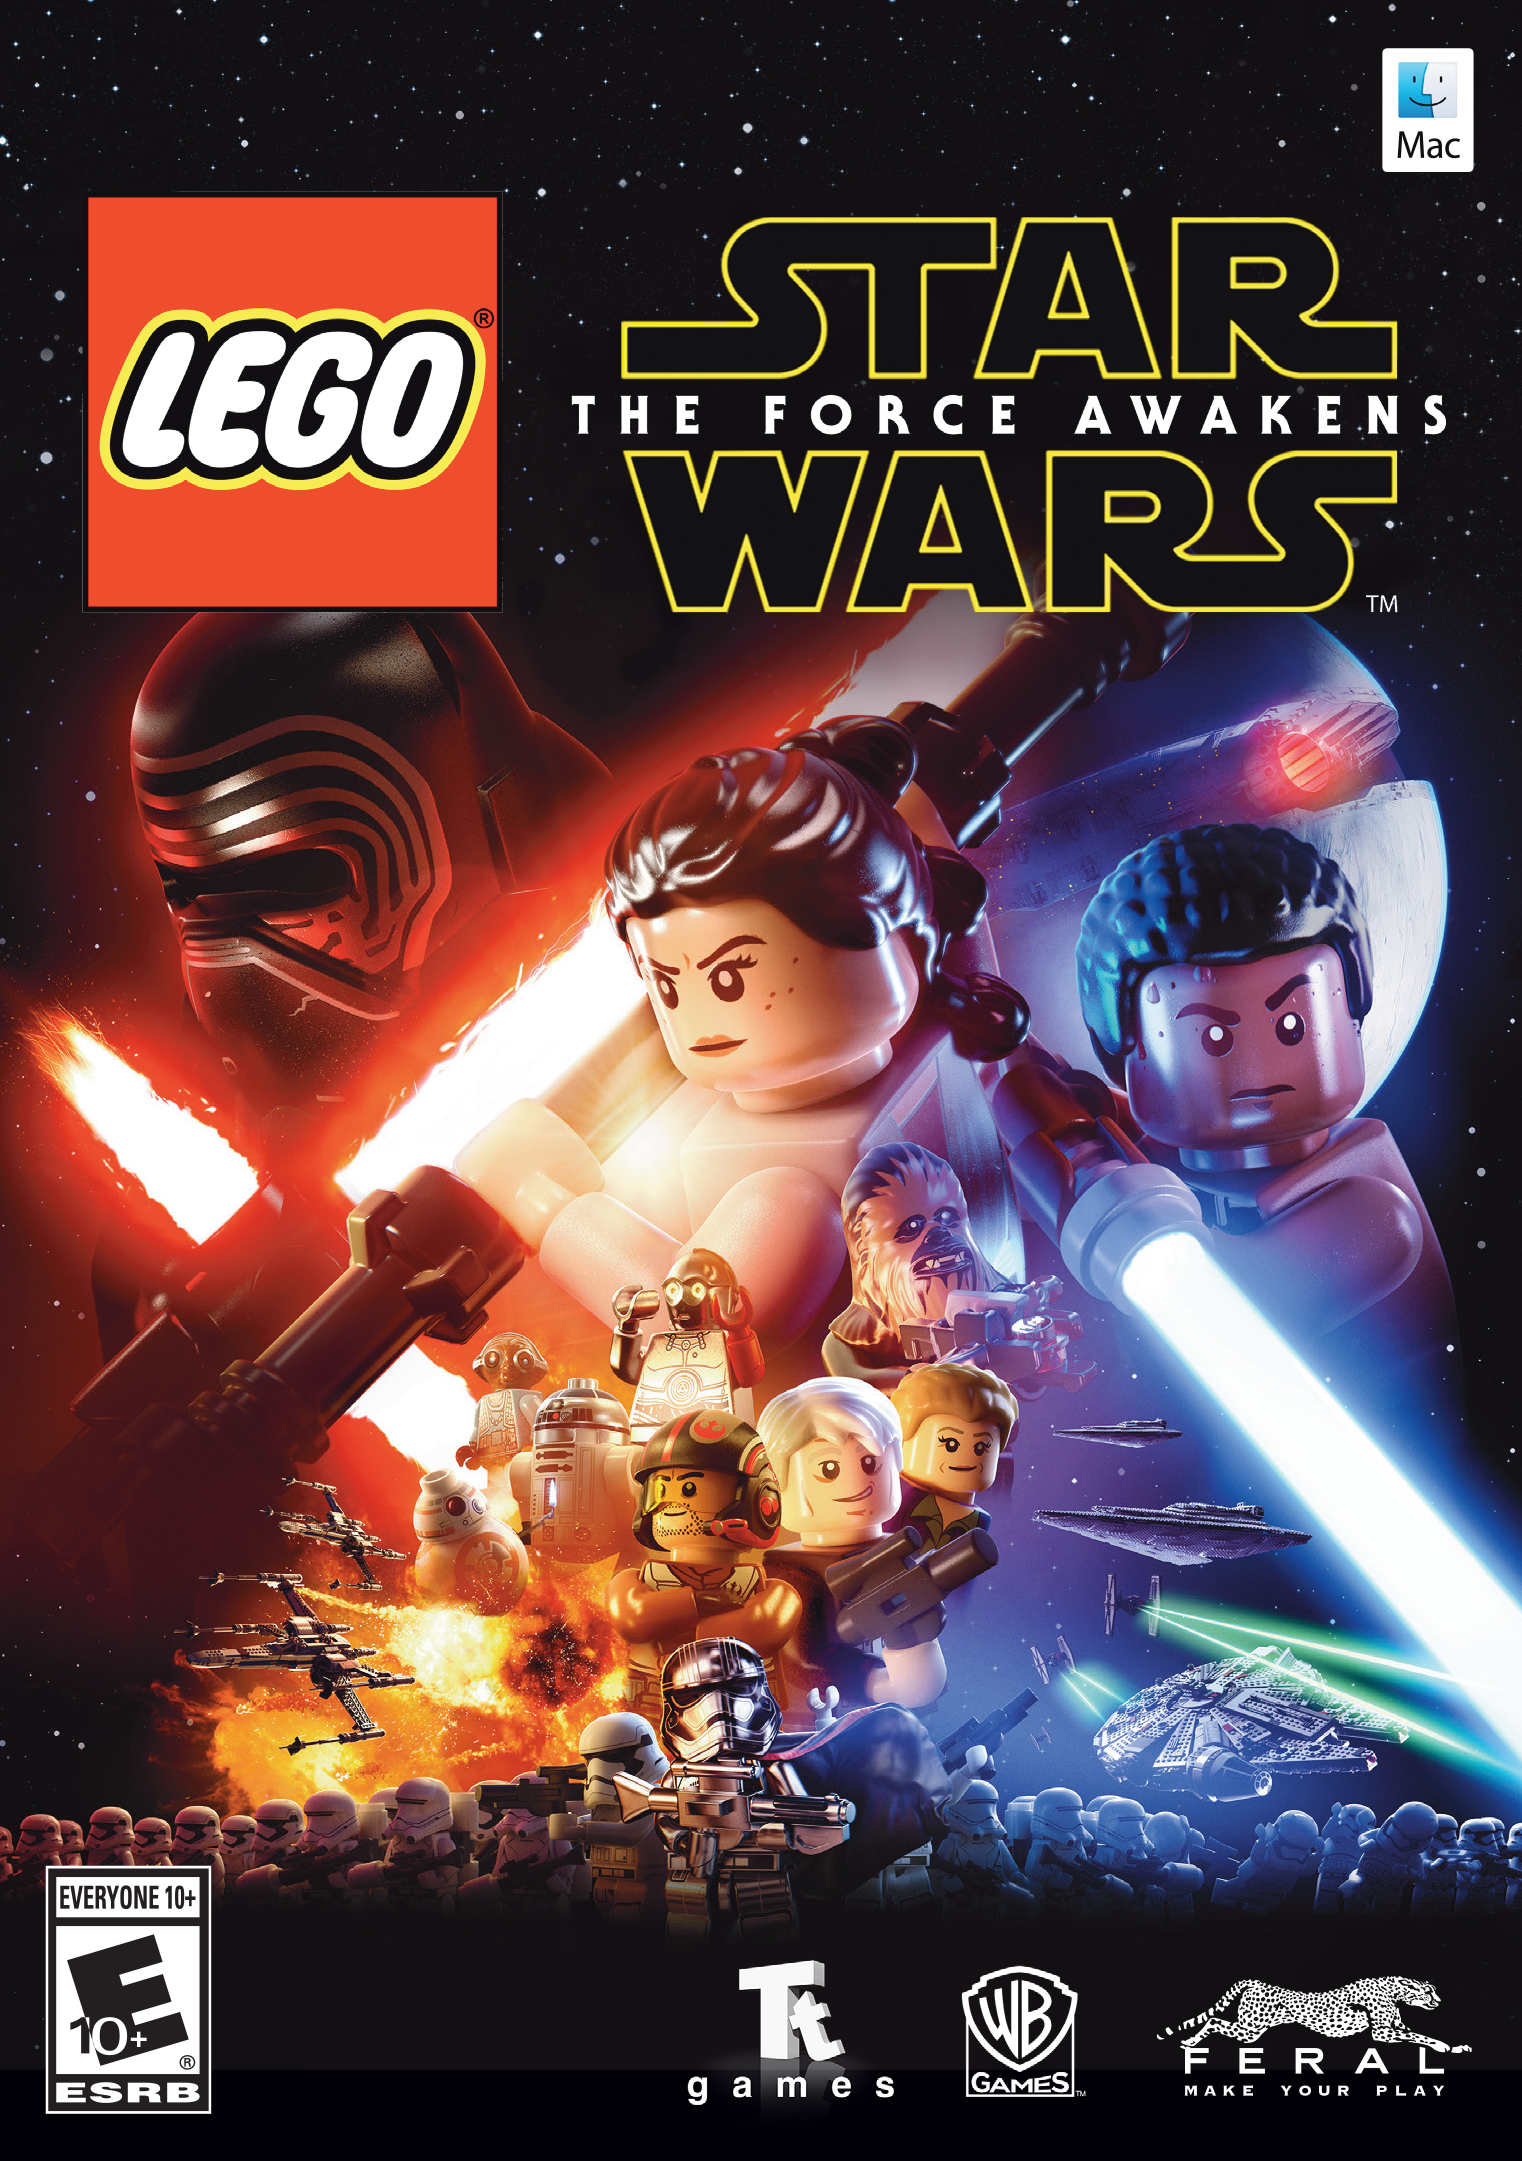 LEGO Star Wars : The Force Awakens (Mac) [Online Game Code]